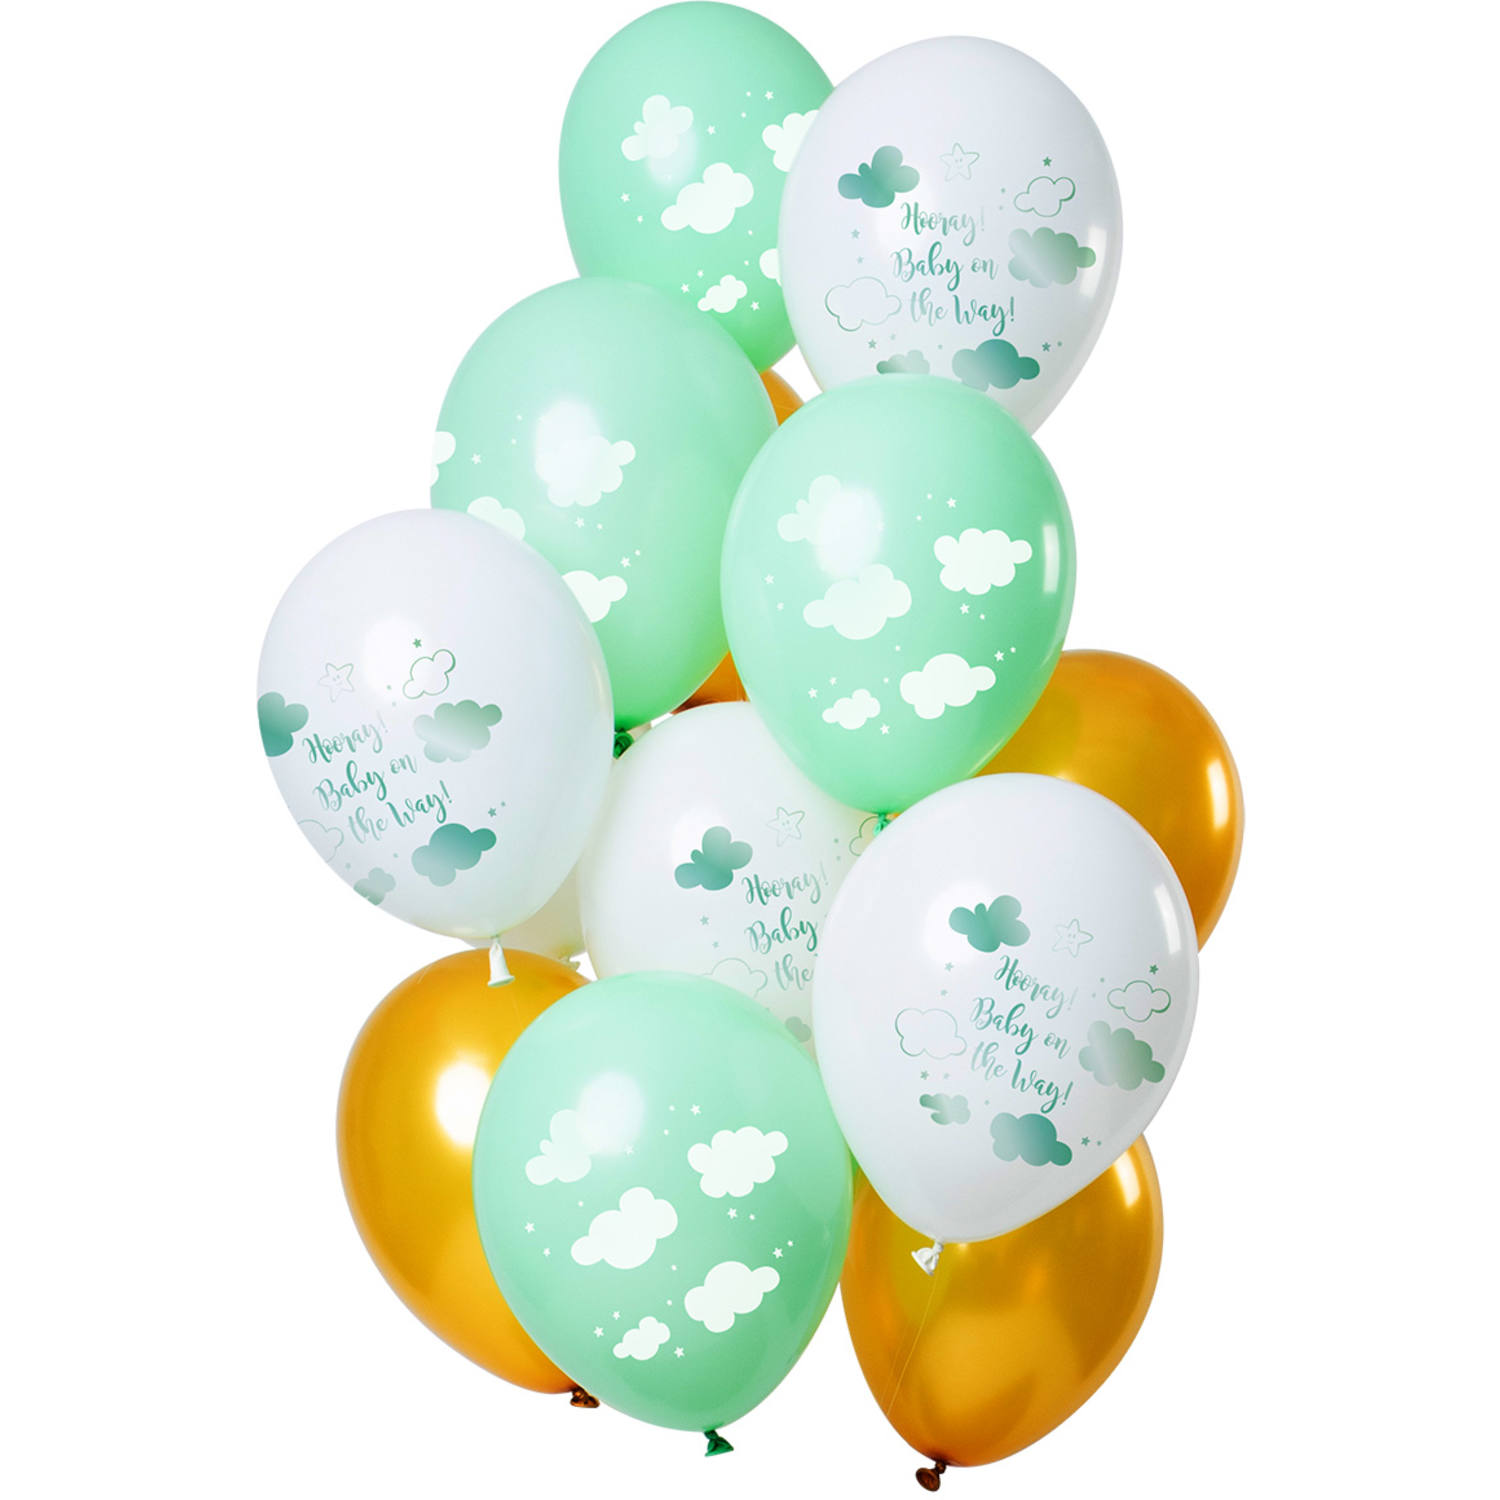 Set de 12 ballons Baby On The Way Vert Or - 30cm